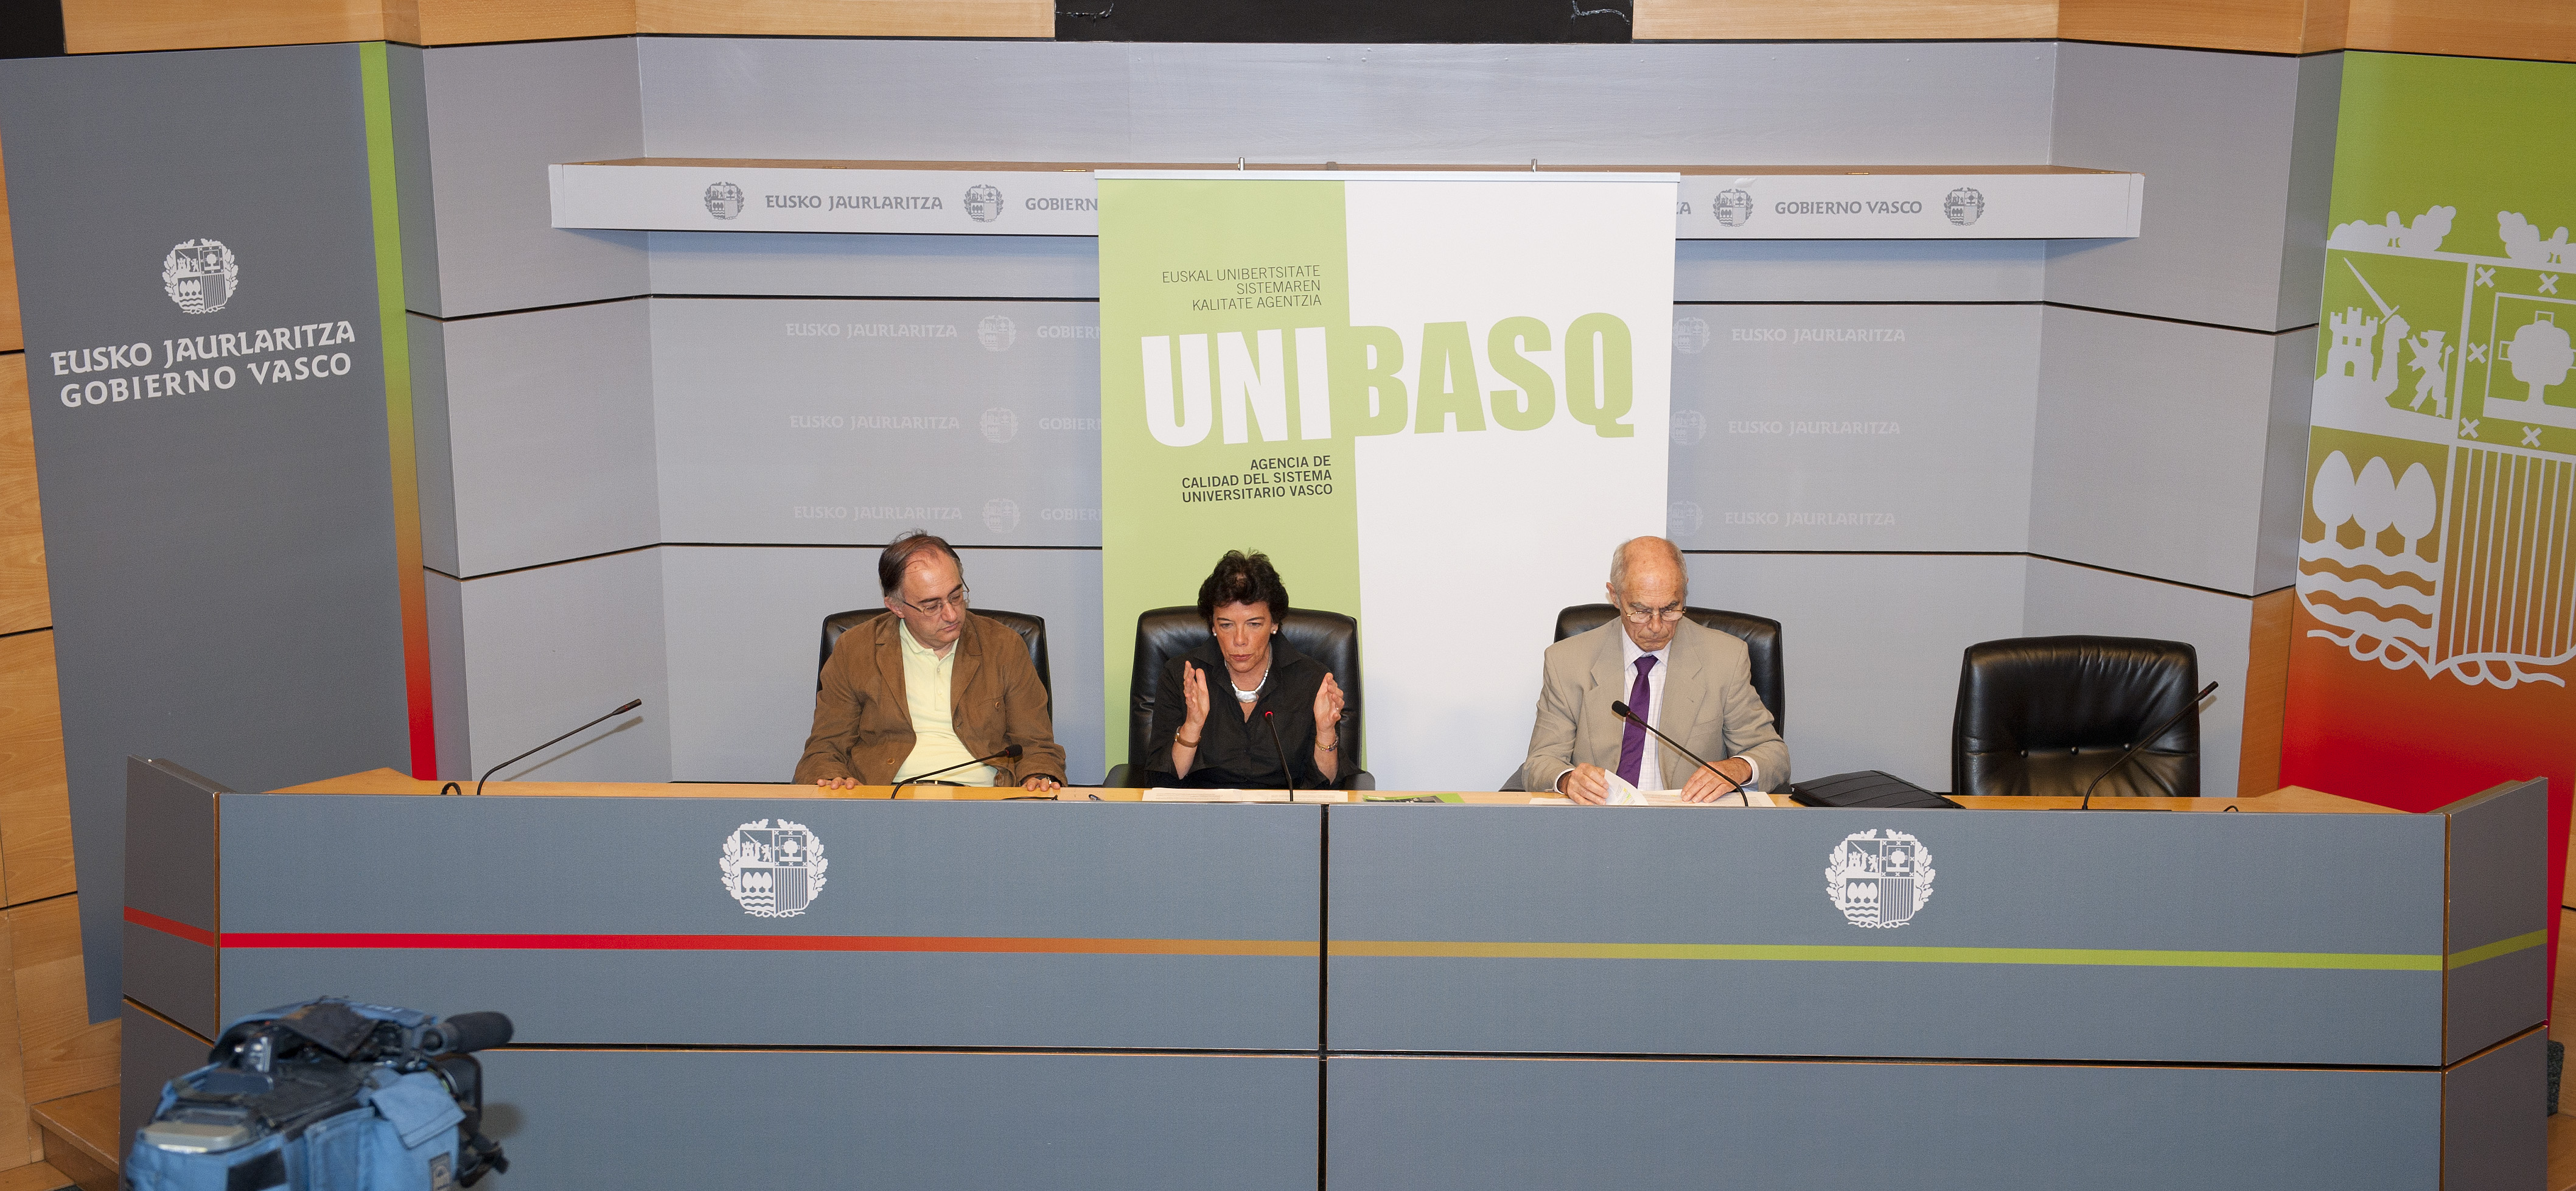 2012_07_13_cela_unibasq_05.jpg